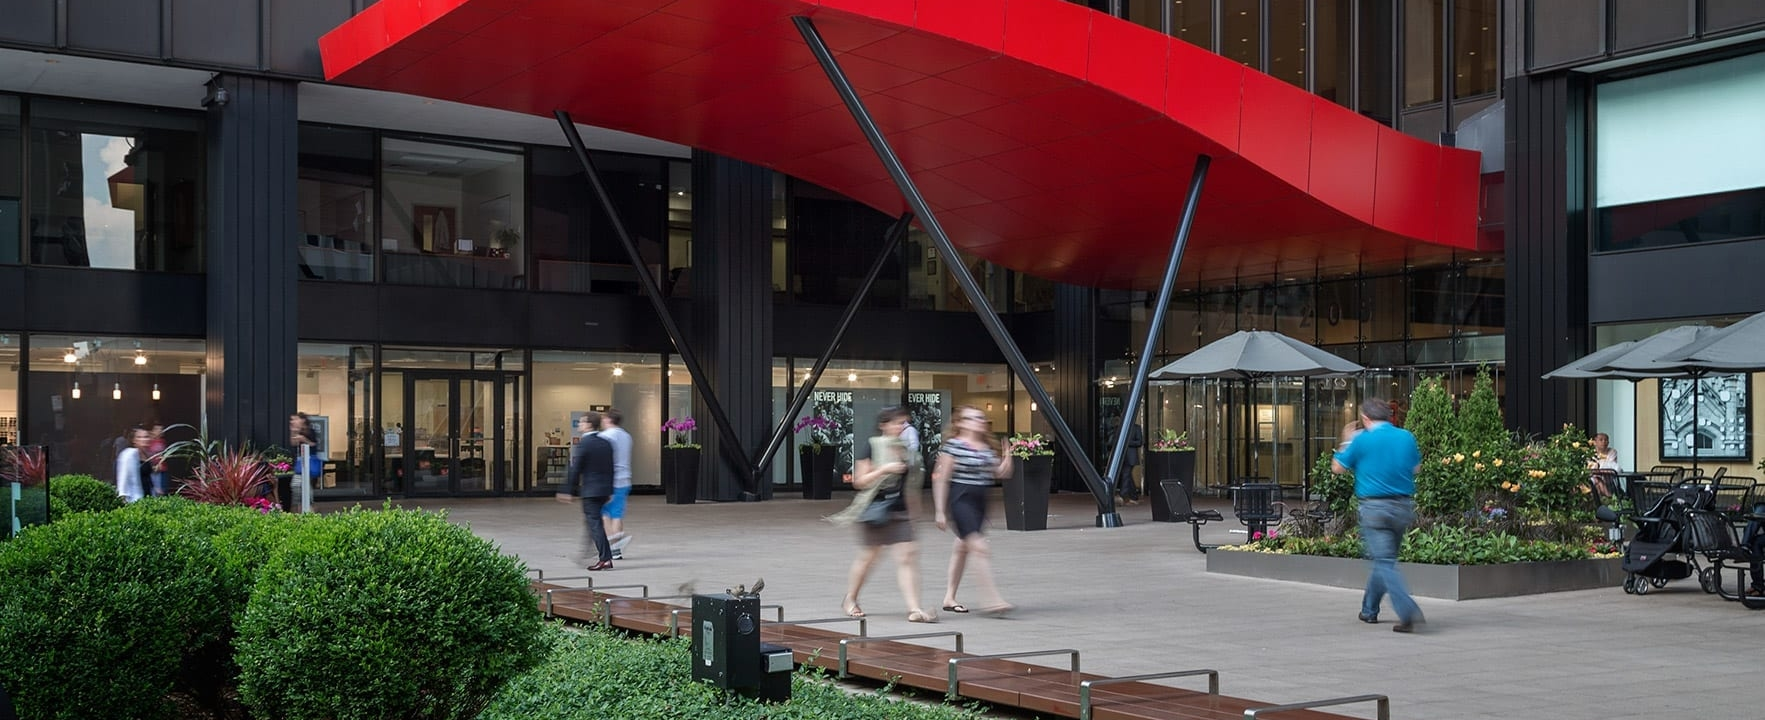 Photo of The red aluminum canopy for Michigan Avenue Plaza in Chicago